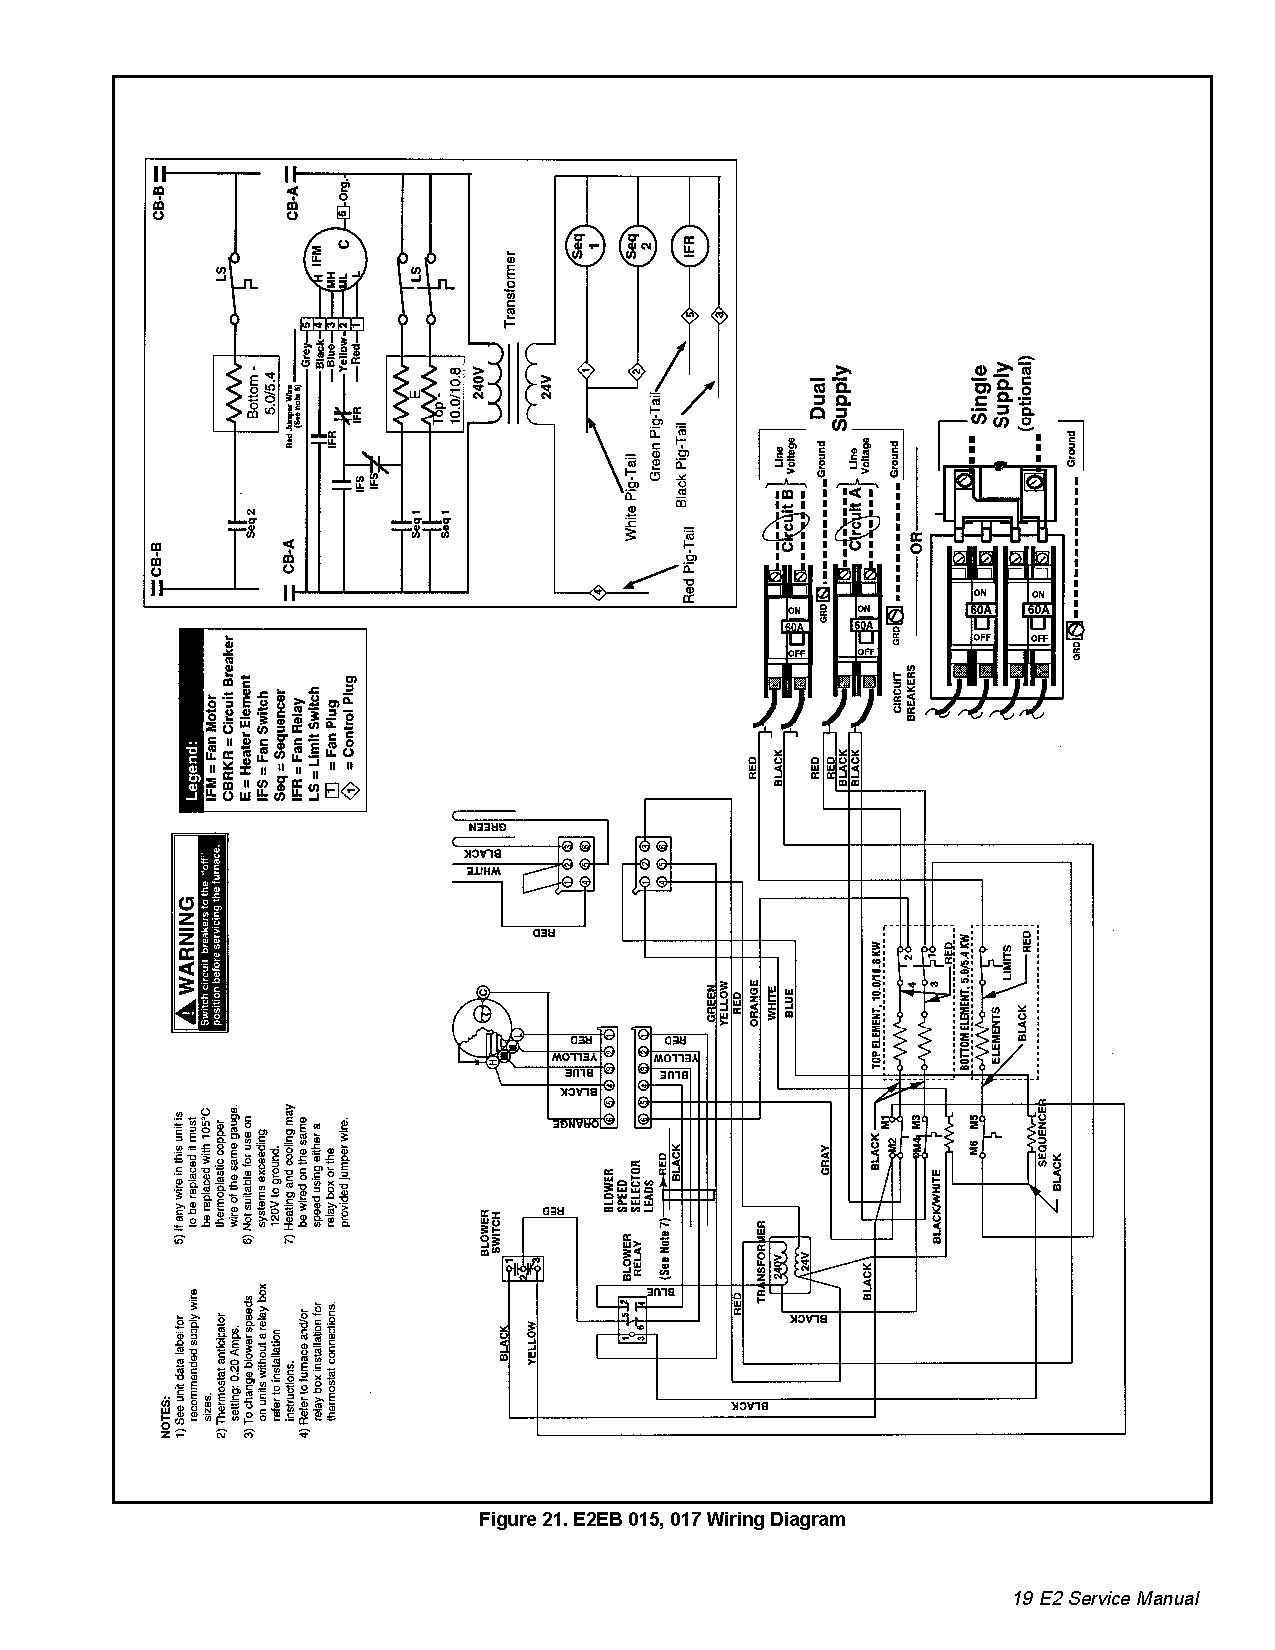 Nordyne Furnace Wiring Diagram